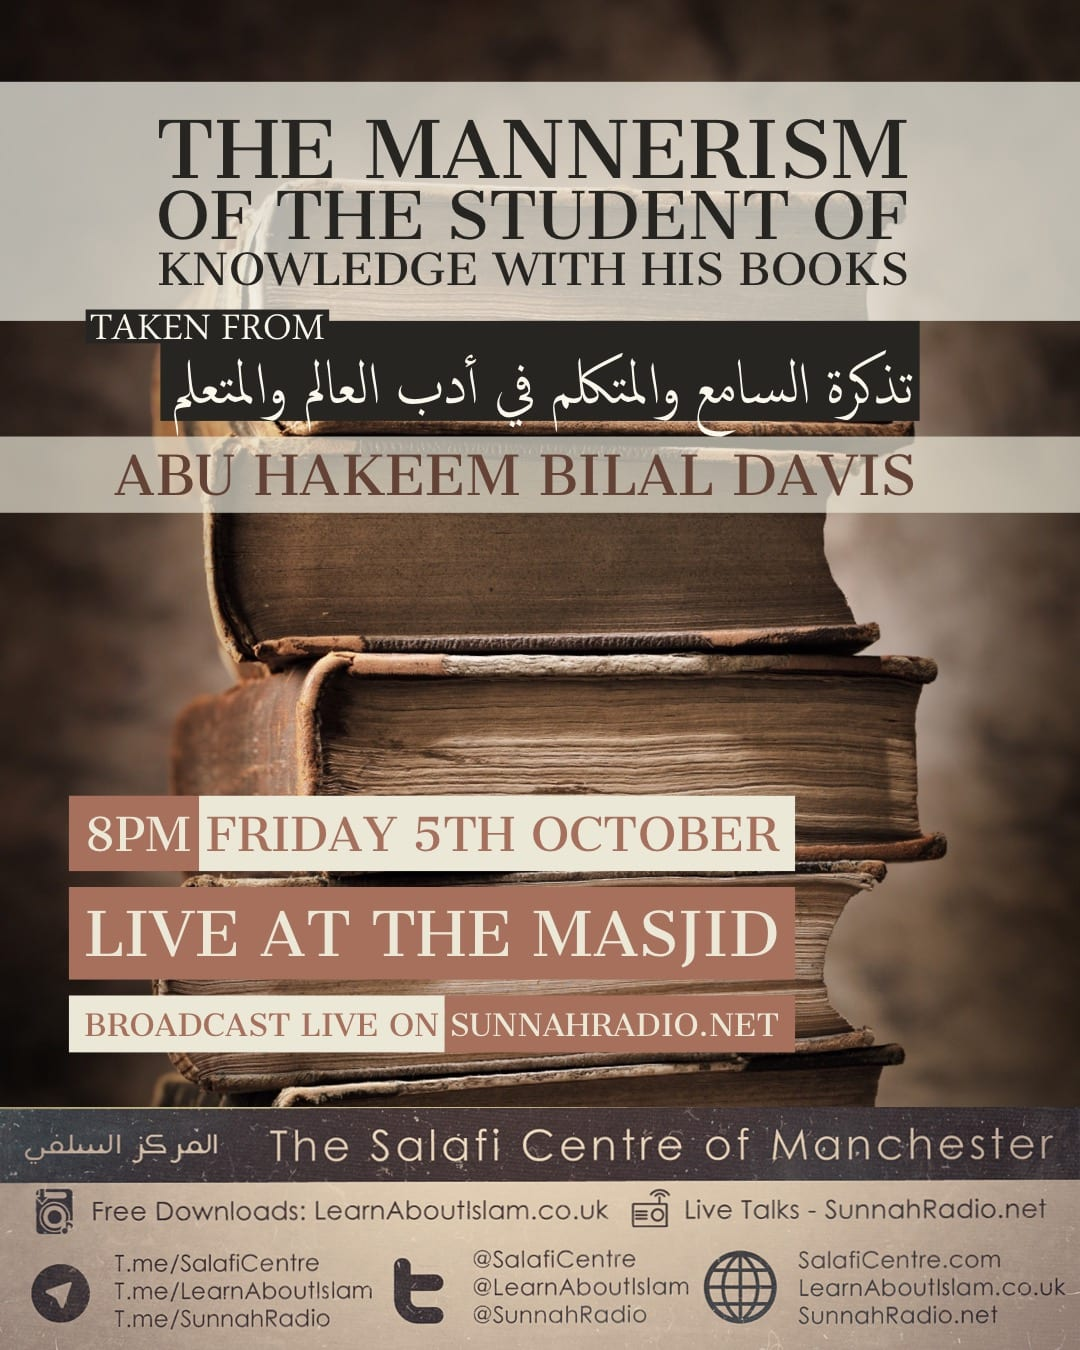 📢 Live Lecture 📢 With Abu Hakeem Bilal Davis @AbuHakeemBilal  ⌚️ 8PM Friday 5TH October 📕 Entitled: The Mannerism of The Student of Knowledge with His Books 🔊 on www.sunnahradio.net